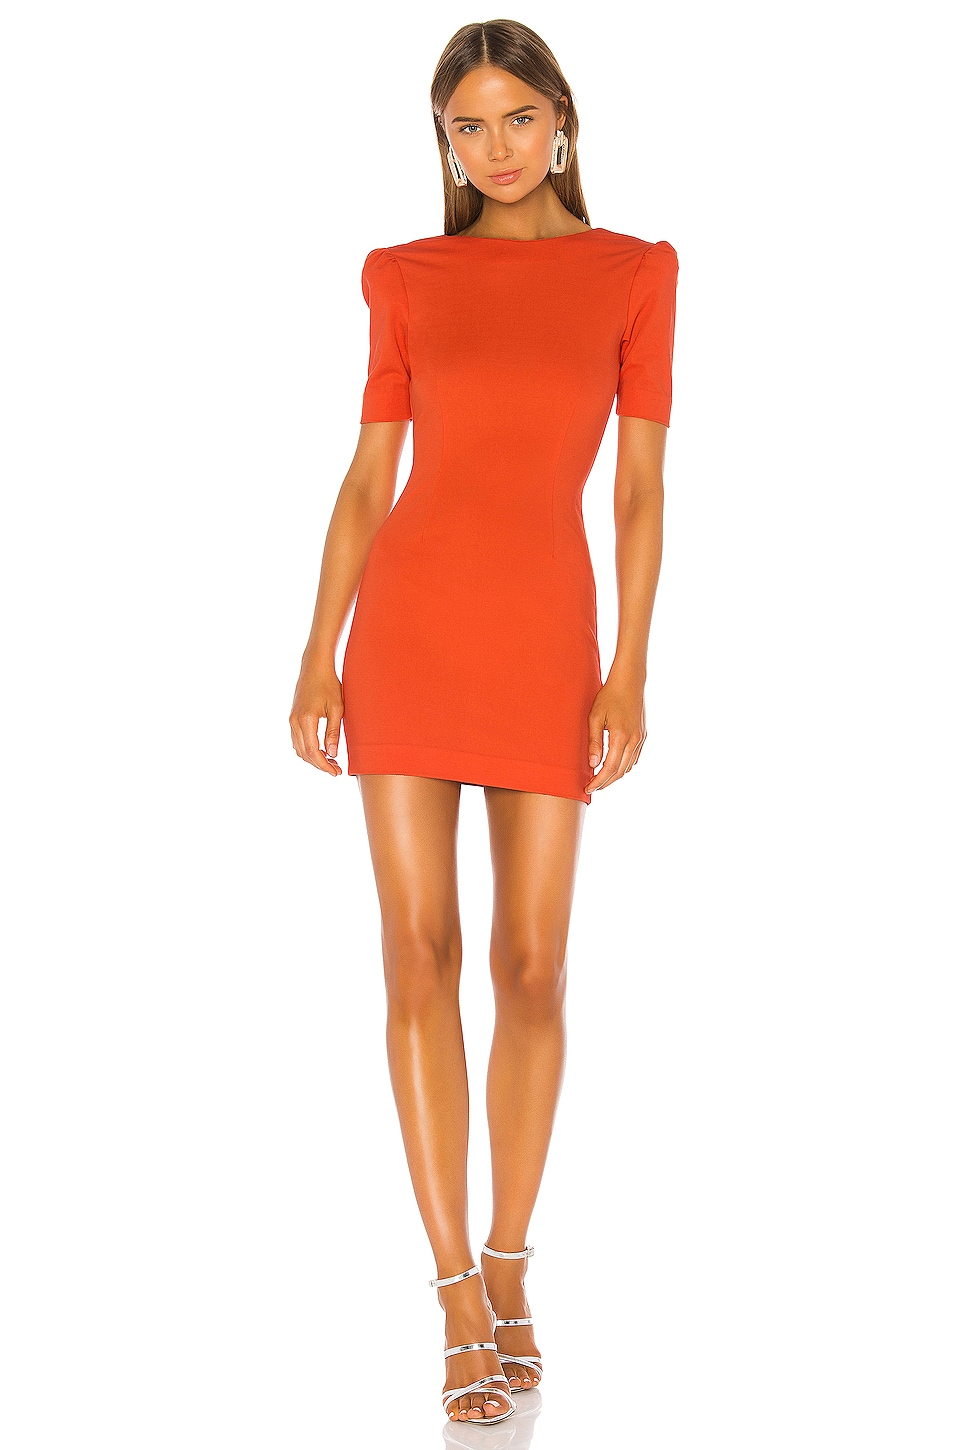 NBD Dani Mini Dress in Red Orange